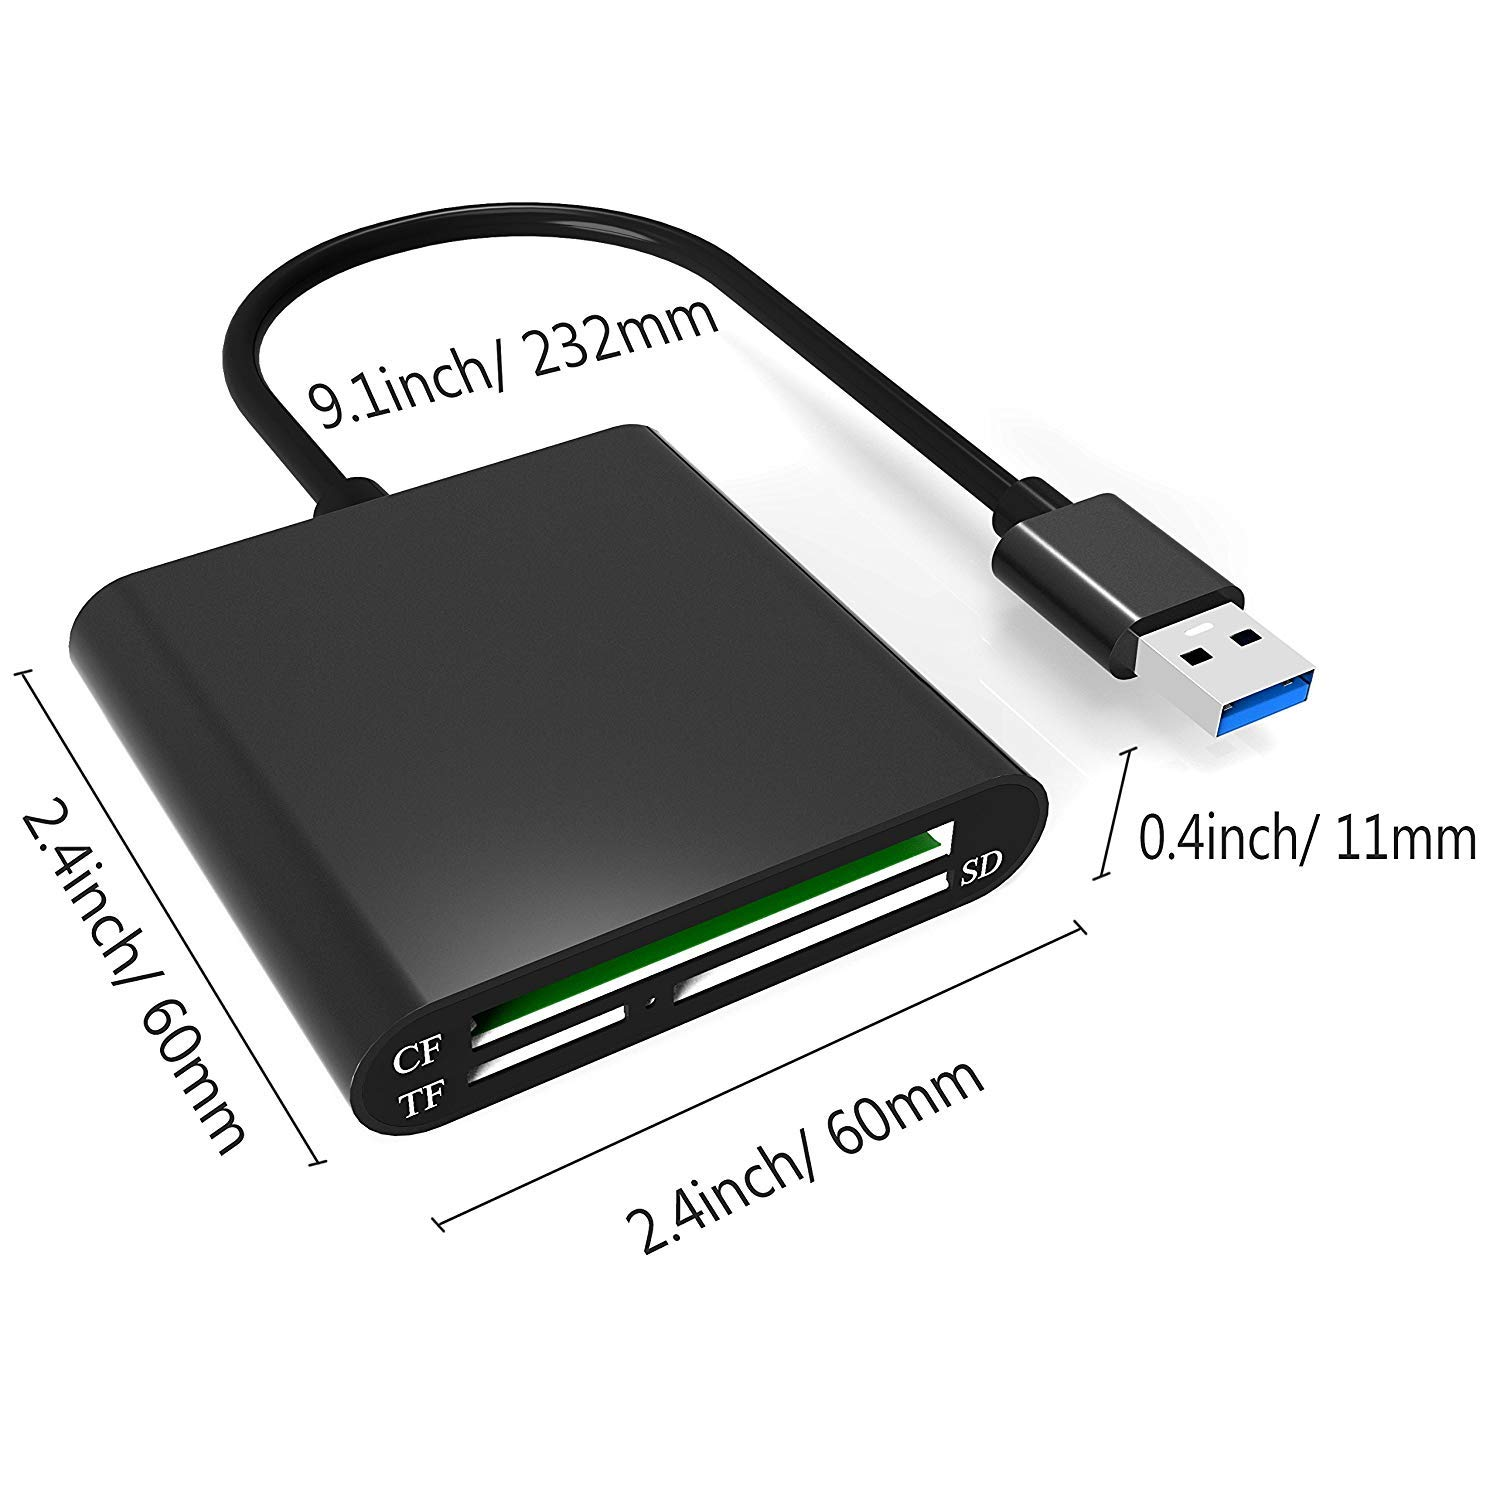 USB 3.0 Aluminum Card Reader MacBook Air MacBook PCs and Laptops MacBook Pro Mac Mini Alcey Superspeed USB 3.0 Multi-in-1 3-Slot Card Reader for CF//SD//Micro SD//TF for iMac